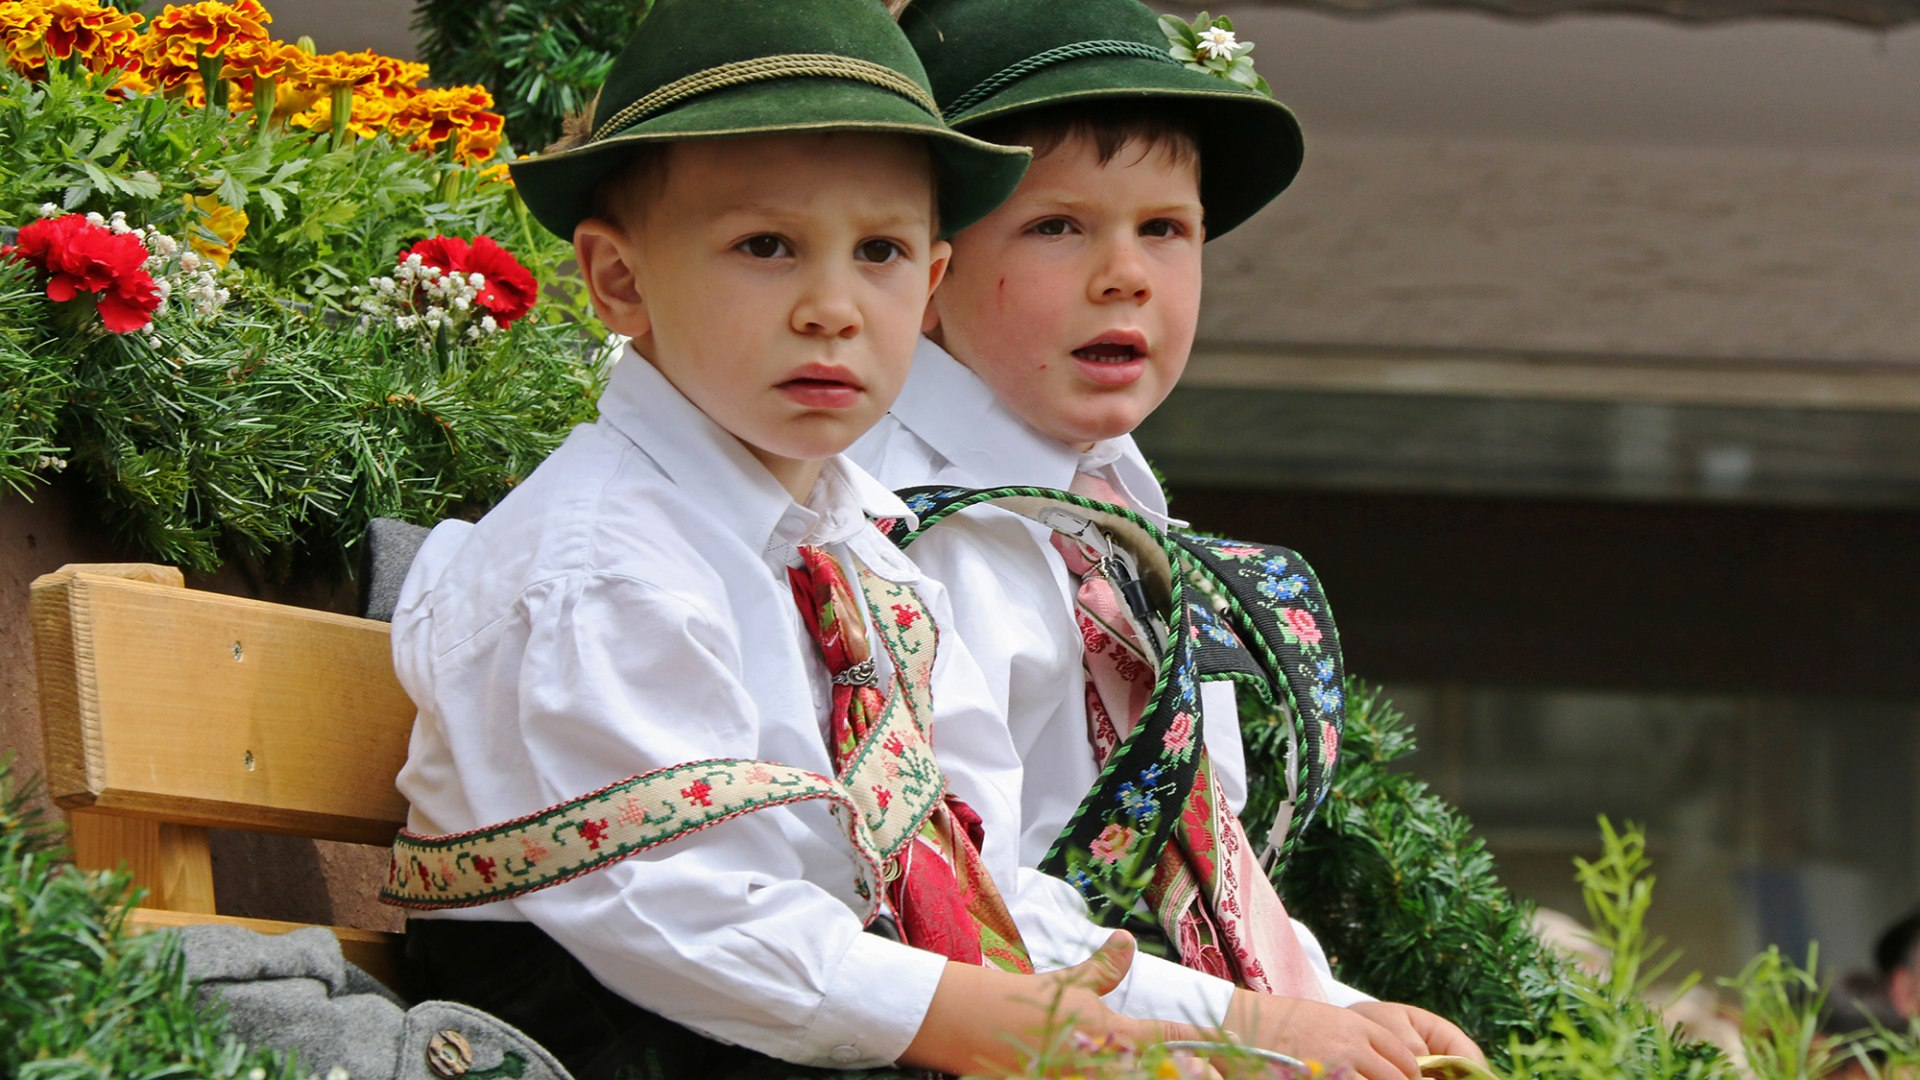 Children with costumes from Mittenwald in the Alpenwelt Karwendel, © Alpenwelt Karwendel | Wera Tuma